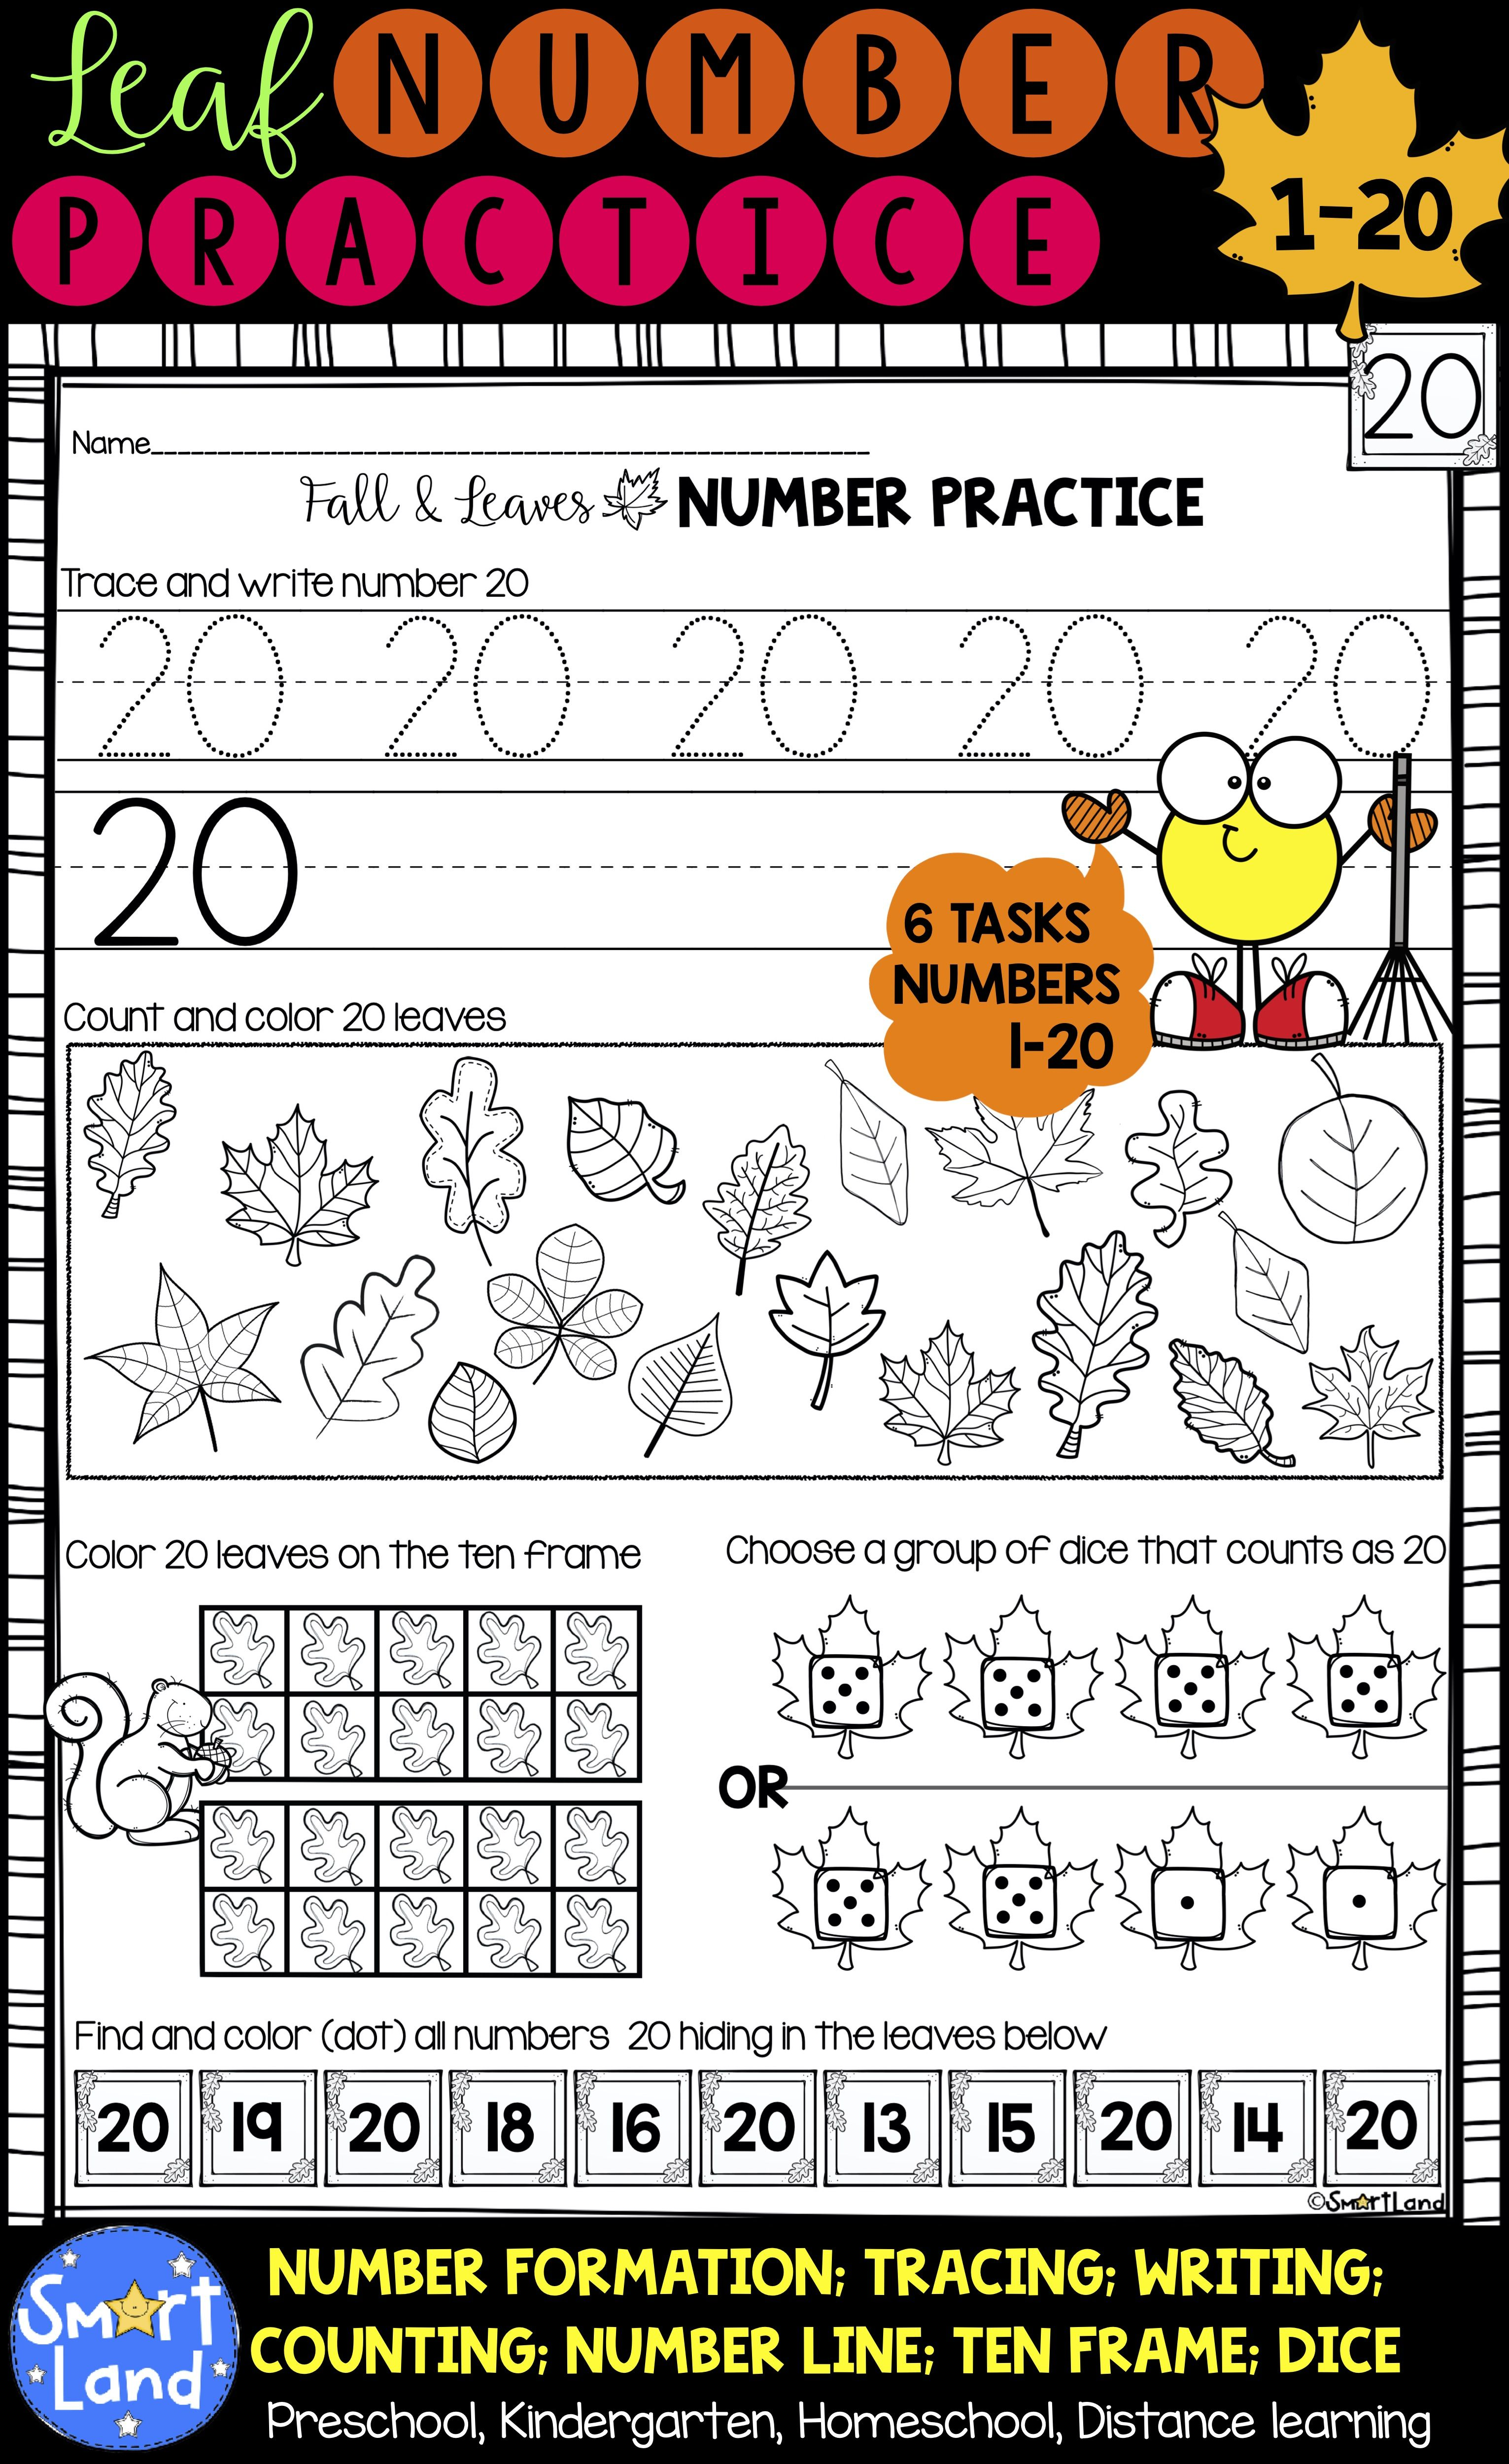 Numbers 1 20 Handwriting And Counting Fall Fun Elementary Resources Kindergarten Resources Homeschool Programs [ 5000 x 3062 Pixel ]